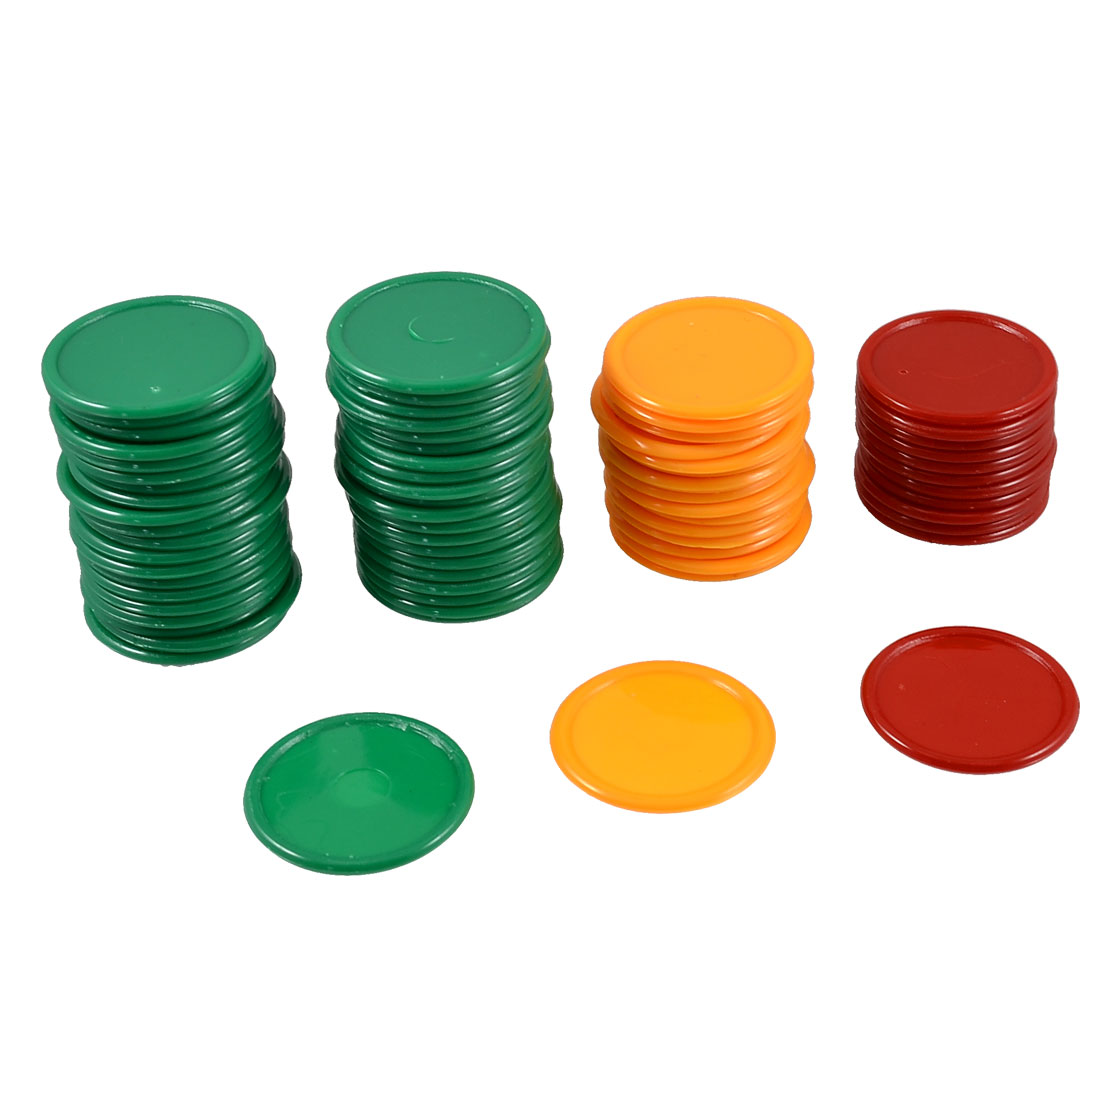 Red Orange Green Round Shaped Mini Poker Chips Lucky Game Props 68 Pcs